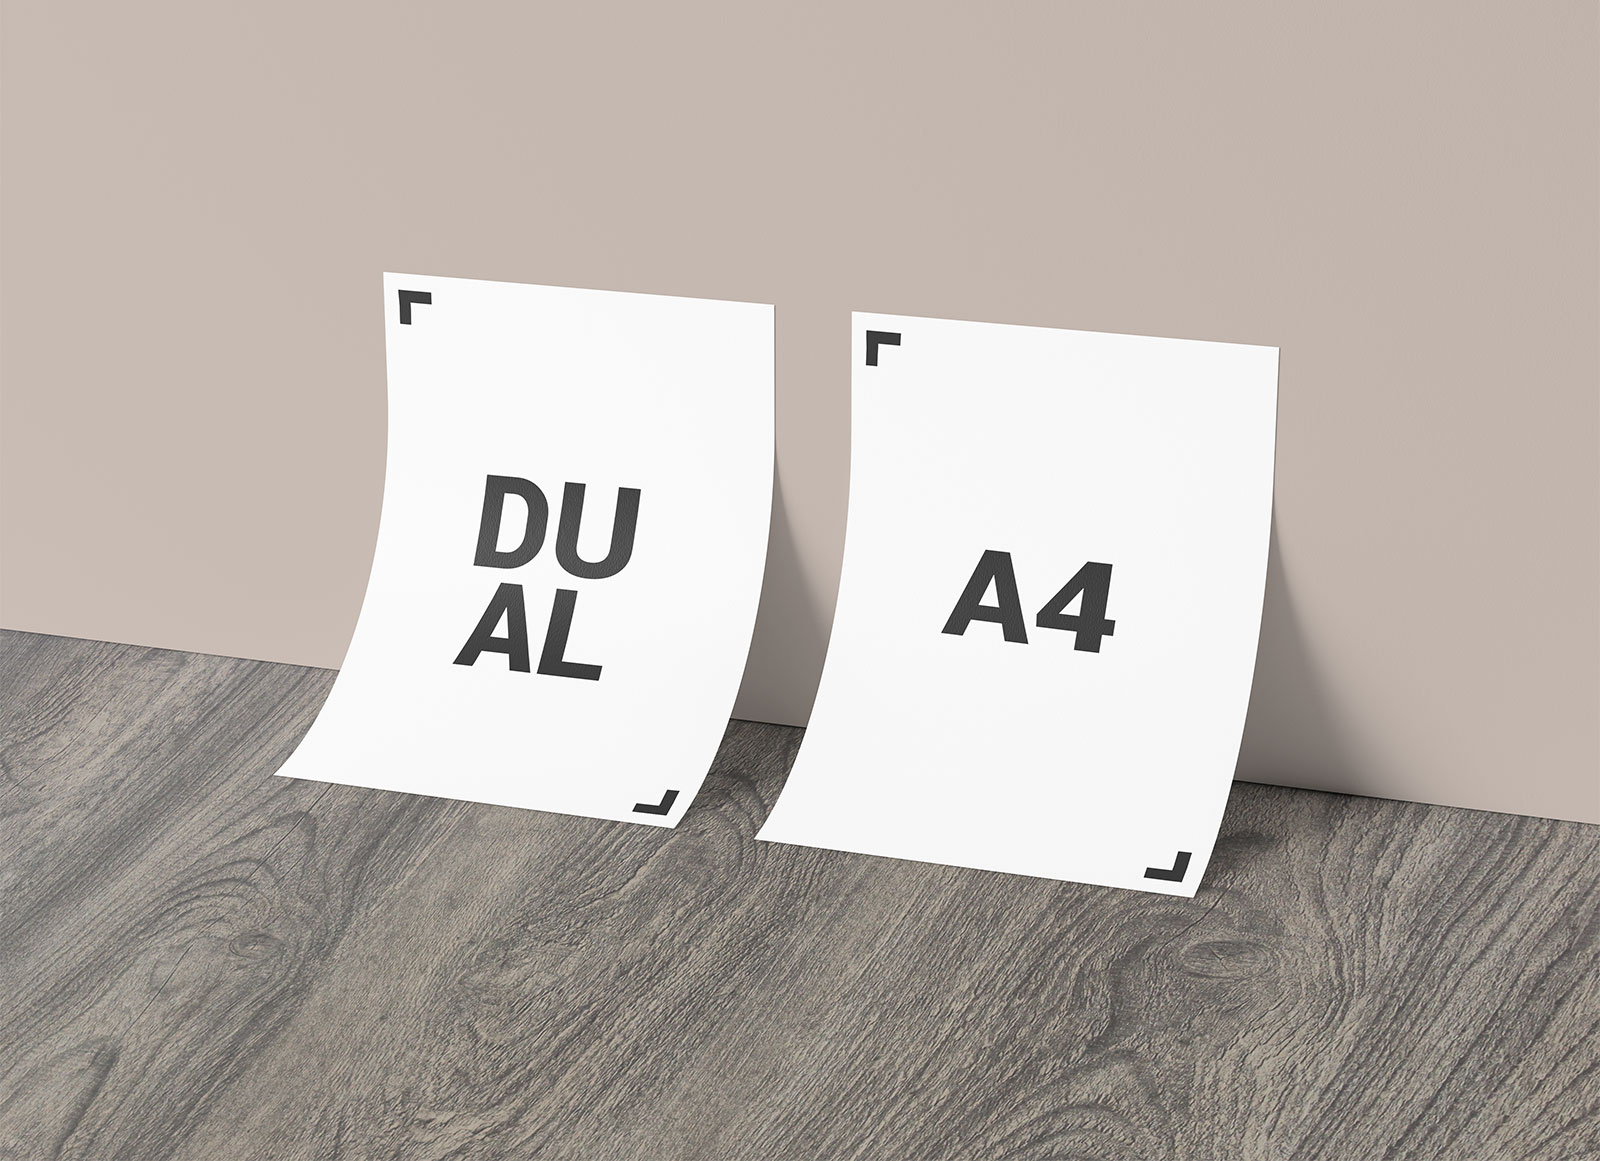 Free-Dual-A4-Paper-Against-Wall-Mockup-PSD